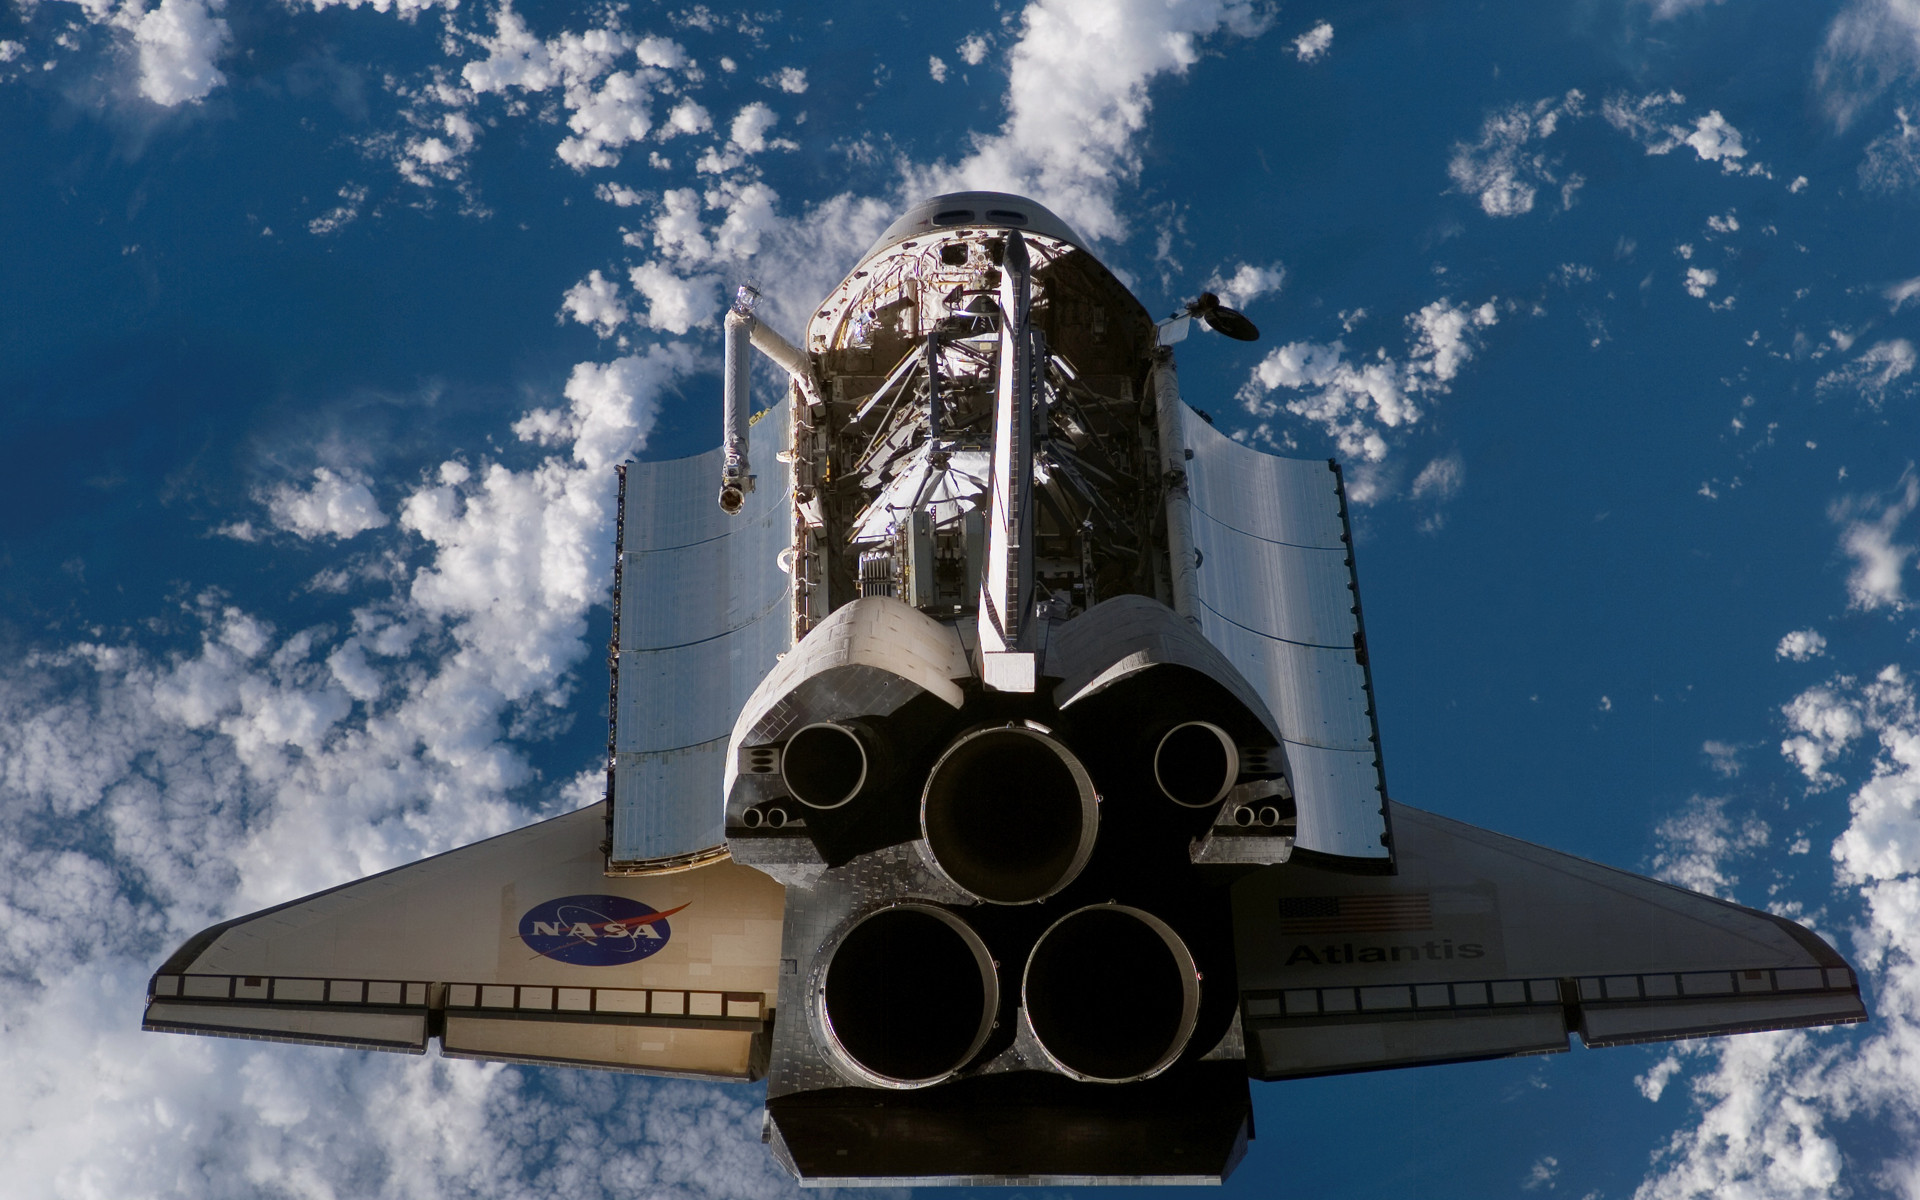 1920x1200 - Space Shuttle atlantis Wallpapers 7